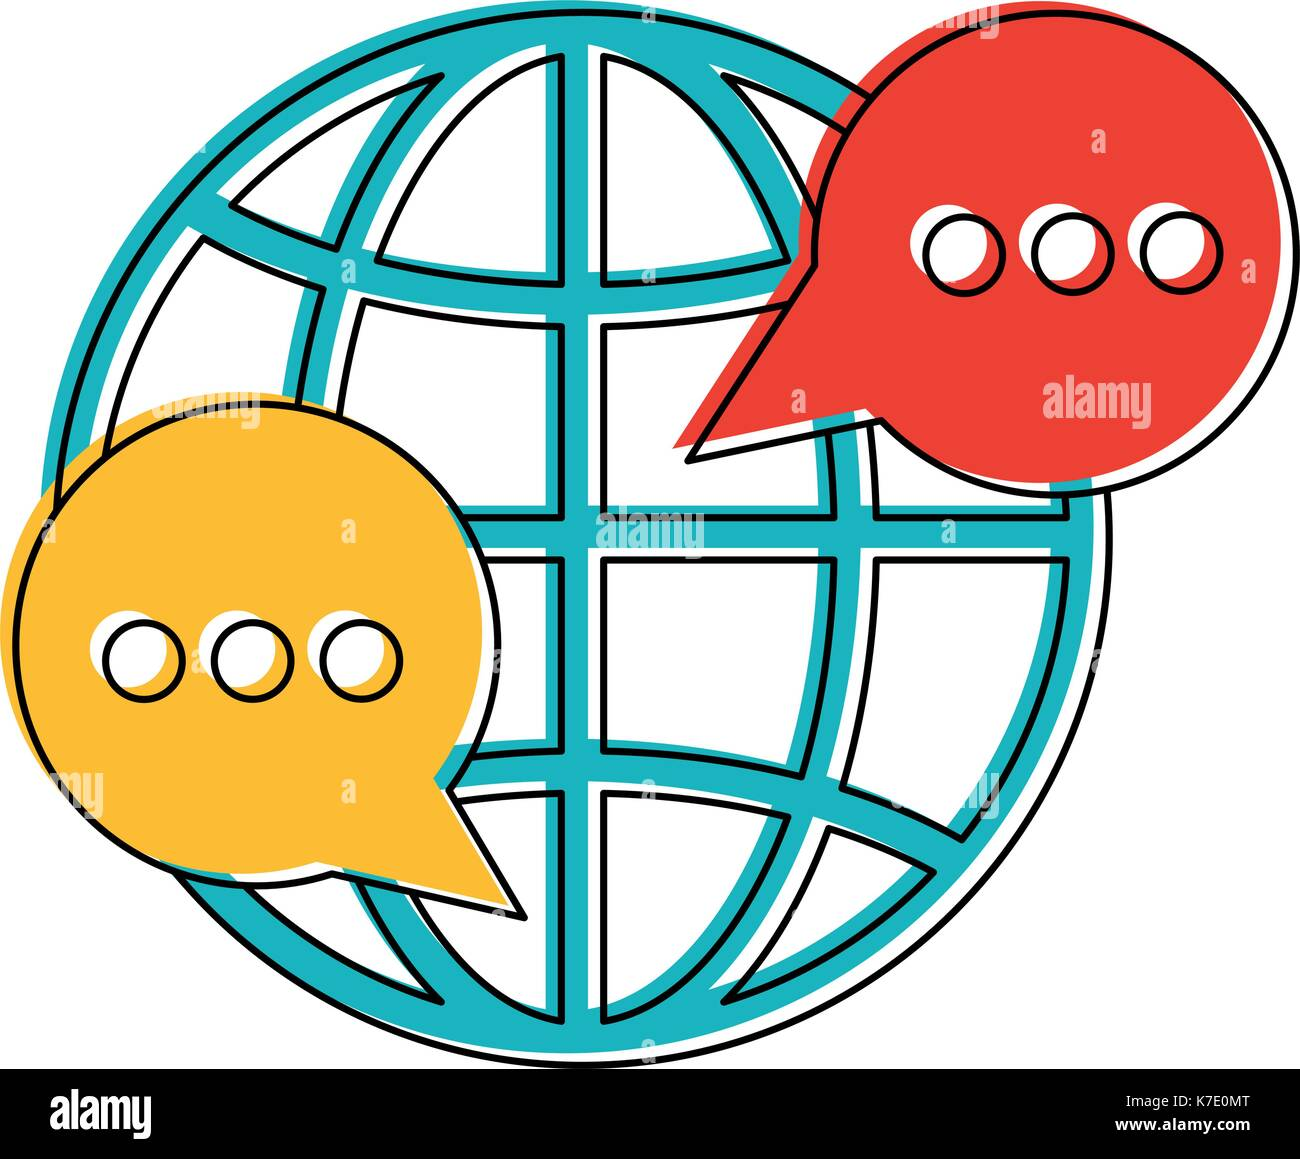 Global Communication Icon Image Stock Vector Image Art Alamy We upload amazing new icon designs everyday! https www alamy com global communication icon image image159503816 html